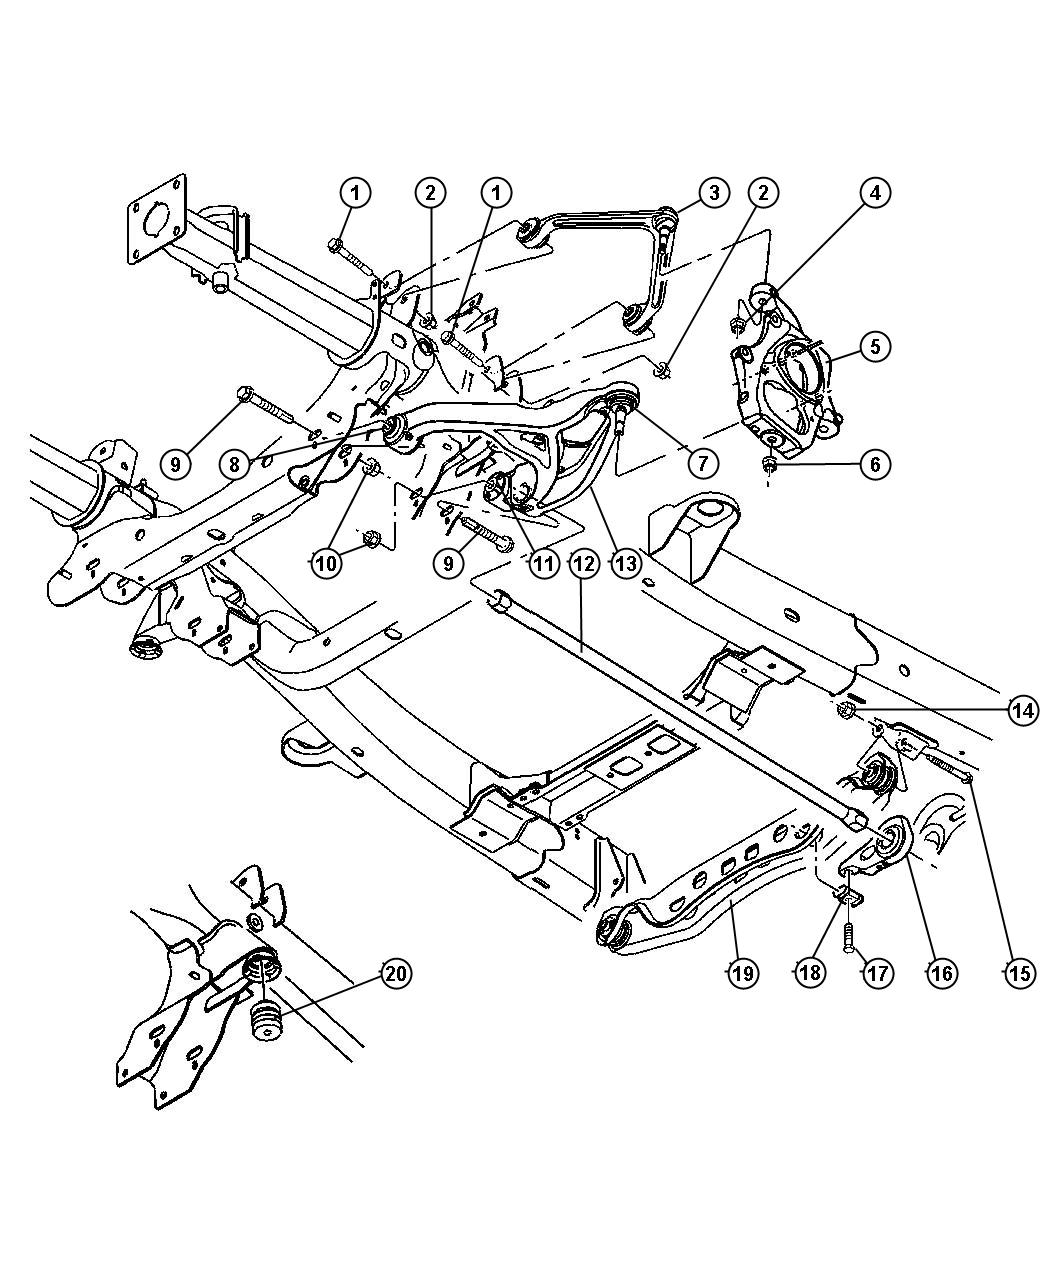 2004 f250 front sway bar parts diagram html